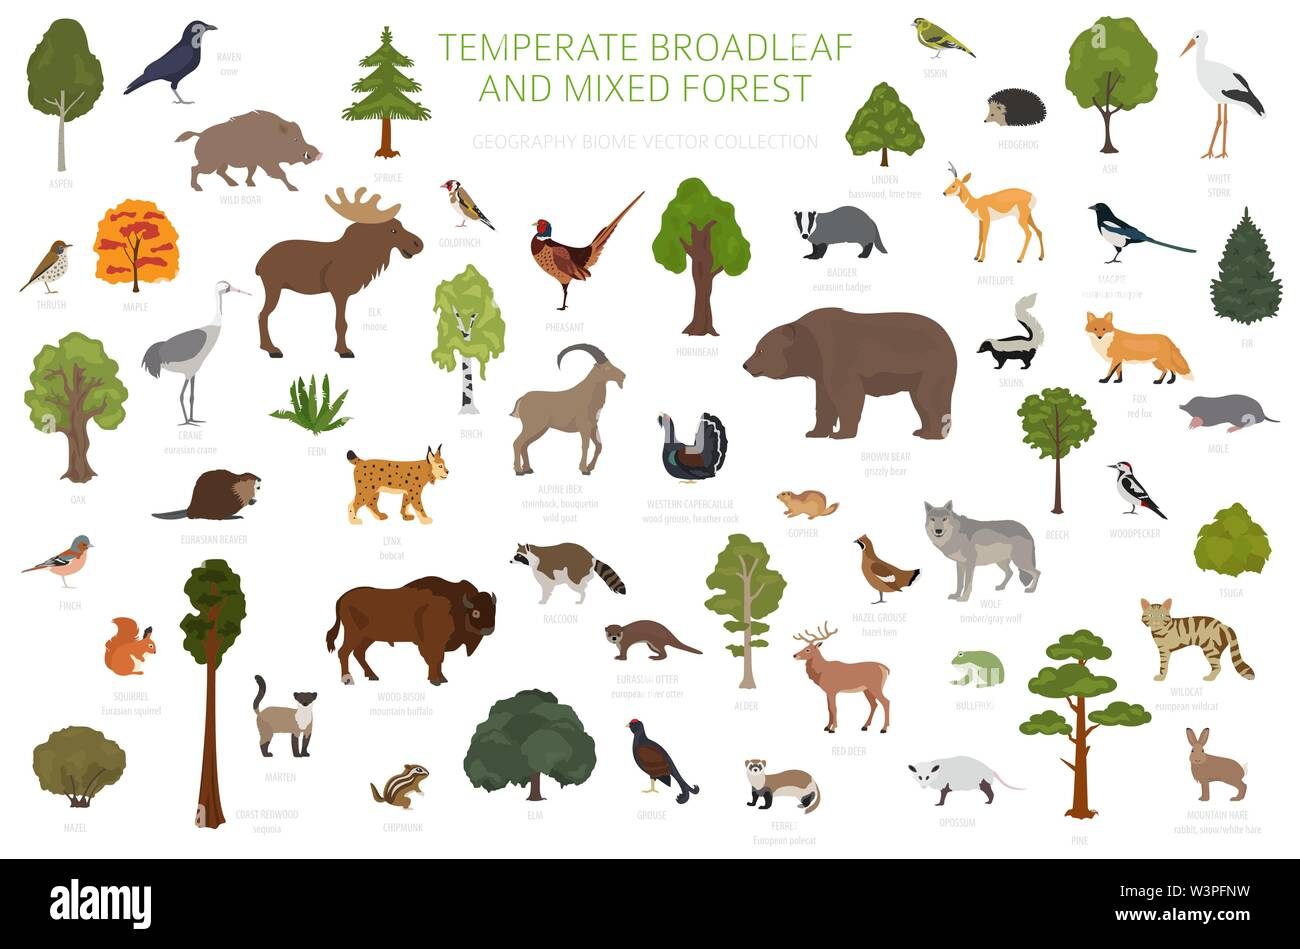 Forests contain the overwhelming majority of life on earth, including a staggering 80% of the planet's terrestrial species. Temperate Broadleaf Forest And Mixed Forest Biome Terrestrial Ecosystem World Map Animals Birds And Plants Graphic Design Vector Illustration Stock Vector Image Art Alamy